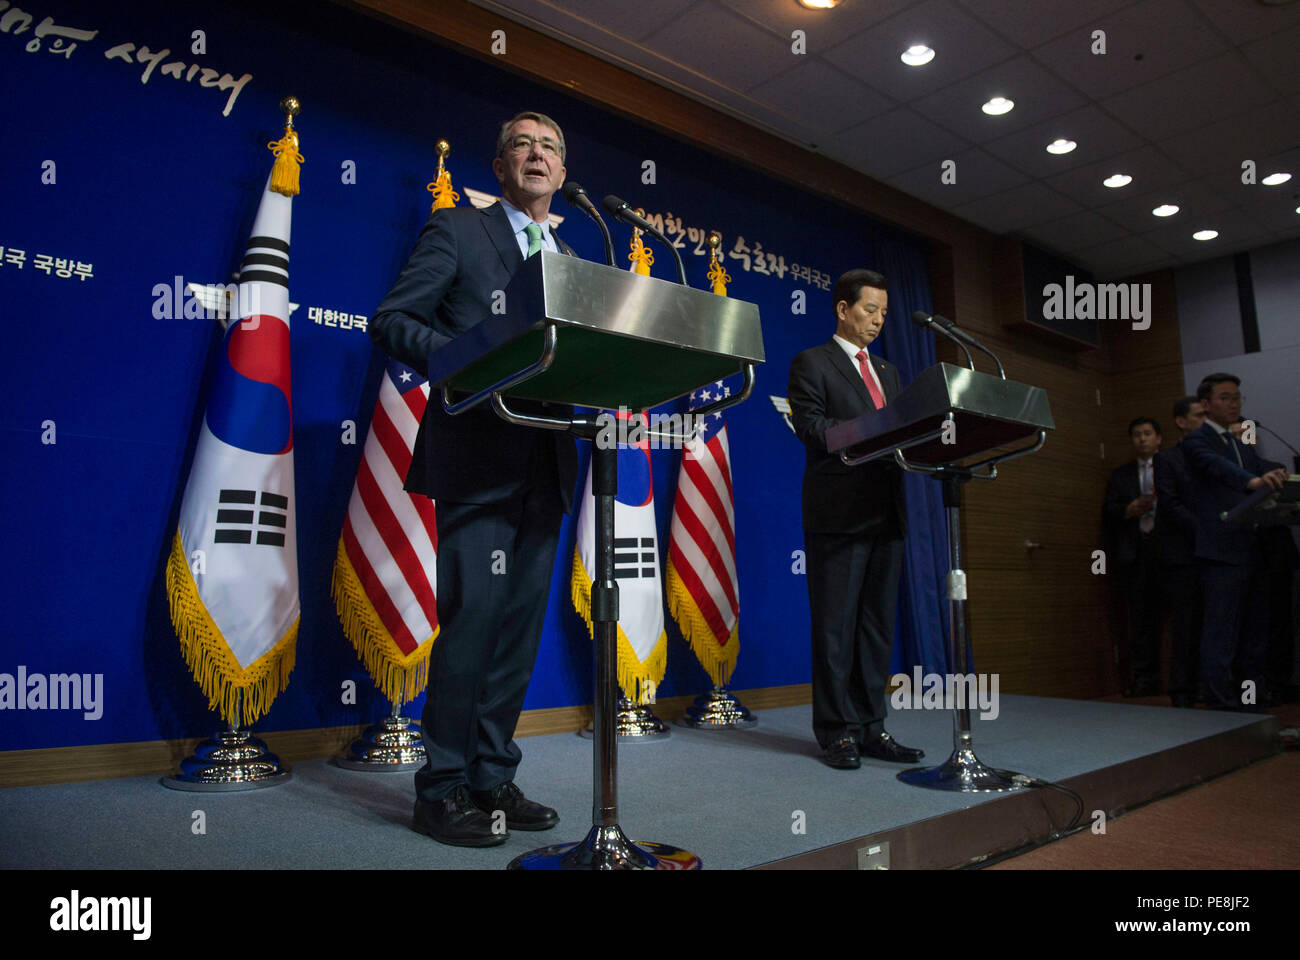 Secretary of Defense Ash Carter speaks with reporters at a joint press conference with Republic of Korea Minister of Defense Minkoo Han following the 47th annual  U.S. - Korea Security Consultative Meeting in Seoul, Republic of Korea Nov. 2, 2015. During the trip the secretary will meet with leaders from more than a dozen nations across East Asia and South Asia to help advance the next phase of the U.S. military's rebalance in the region by modernizing longtime alliances and building new partnerships. (Photo by Senior Master Sgt. Adrian Cadiz)(Released) Stock Photo